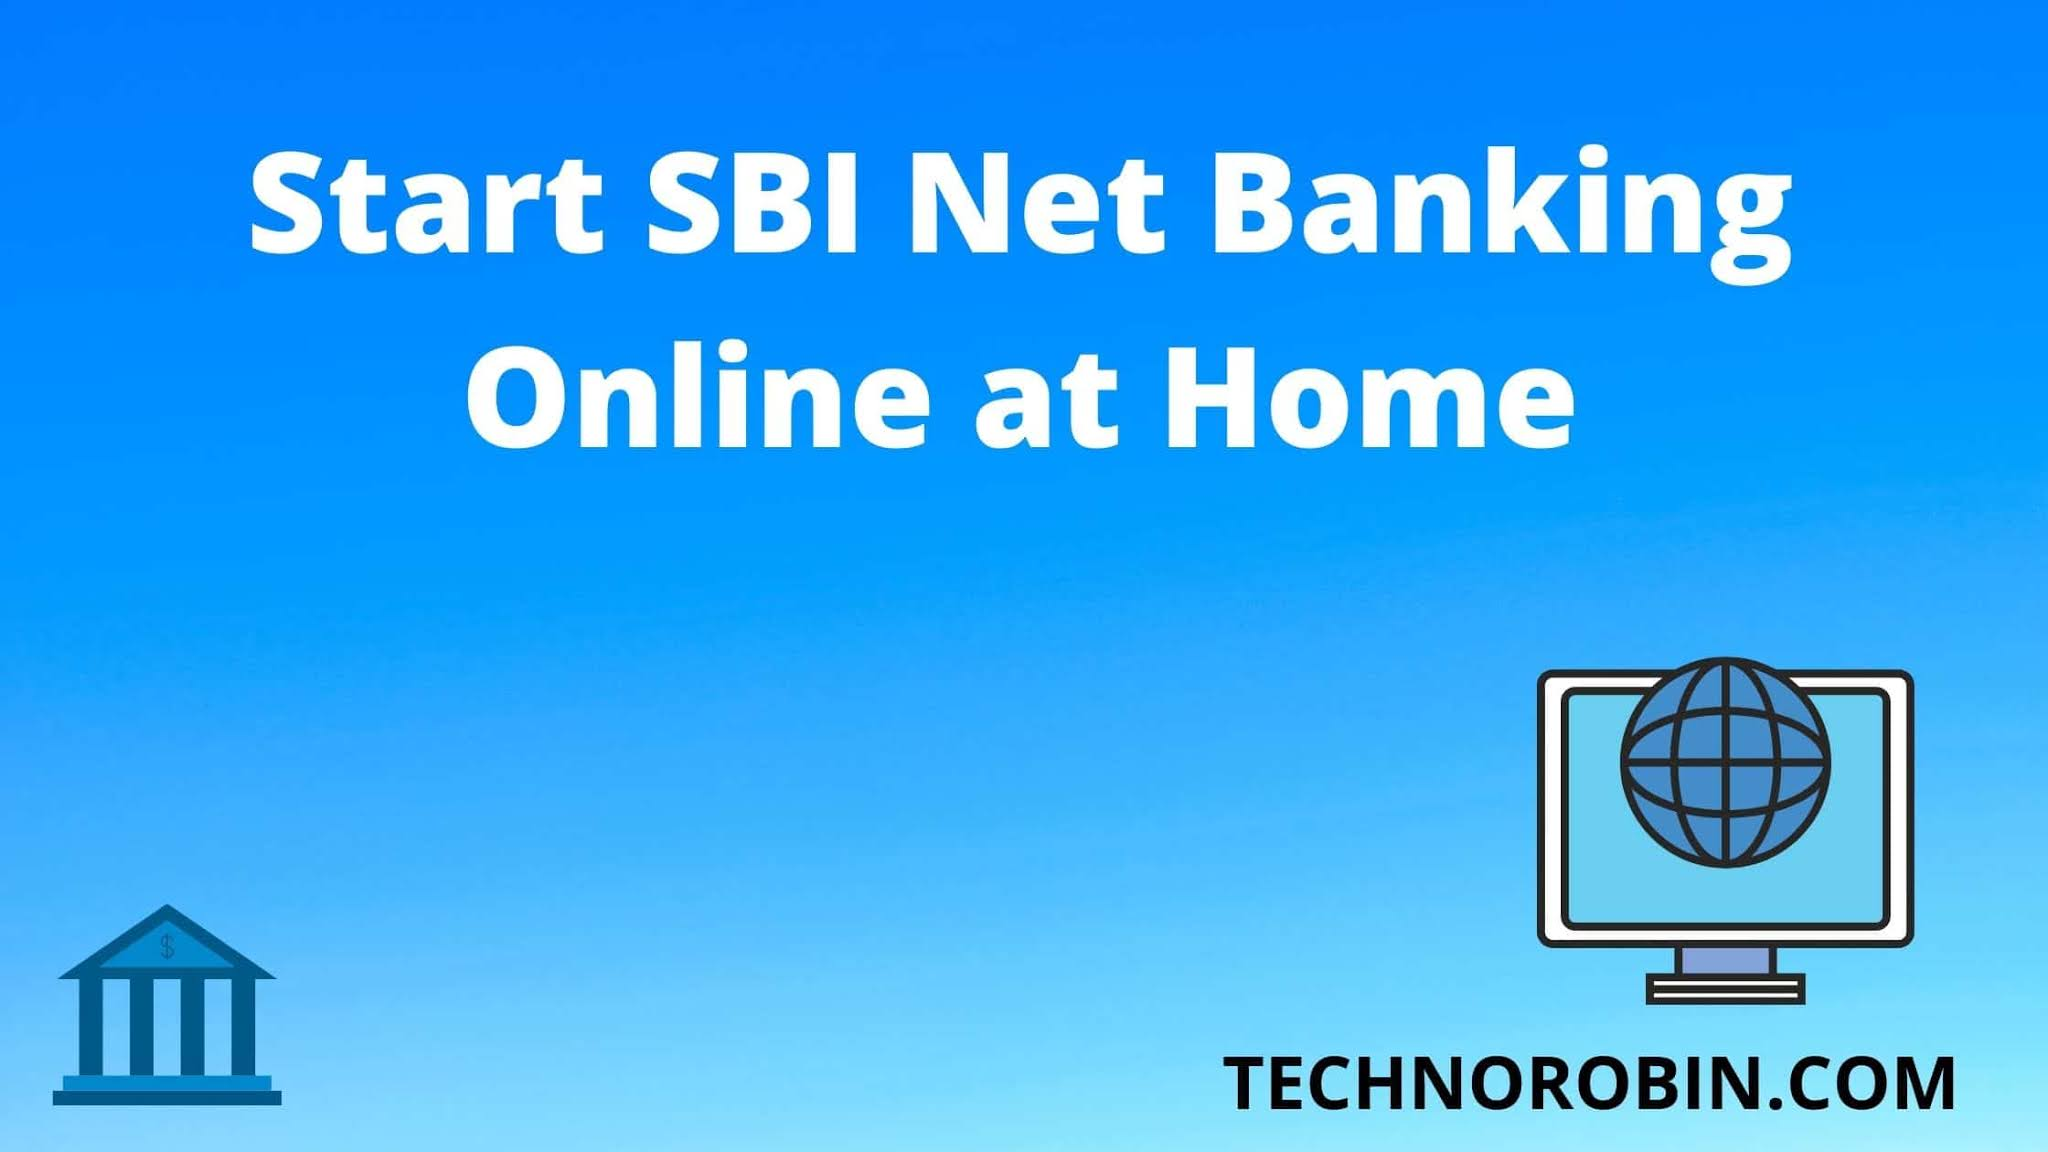 How to start SBI net Banking online at home